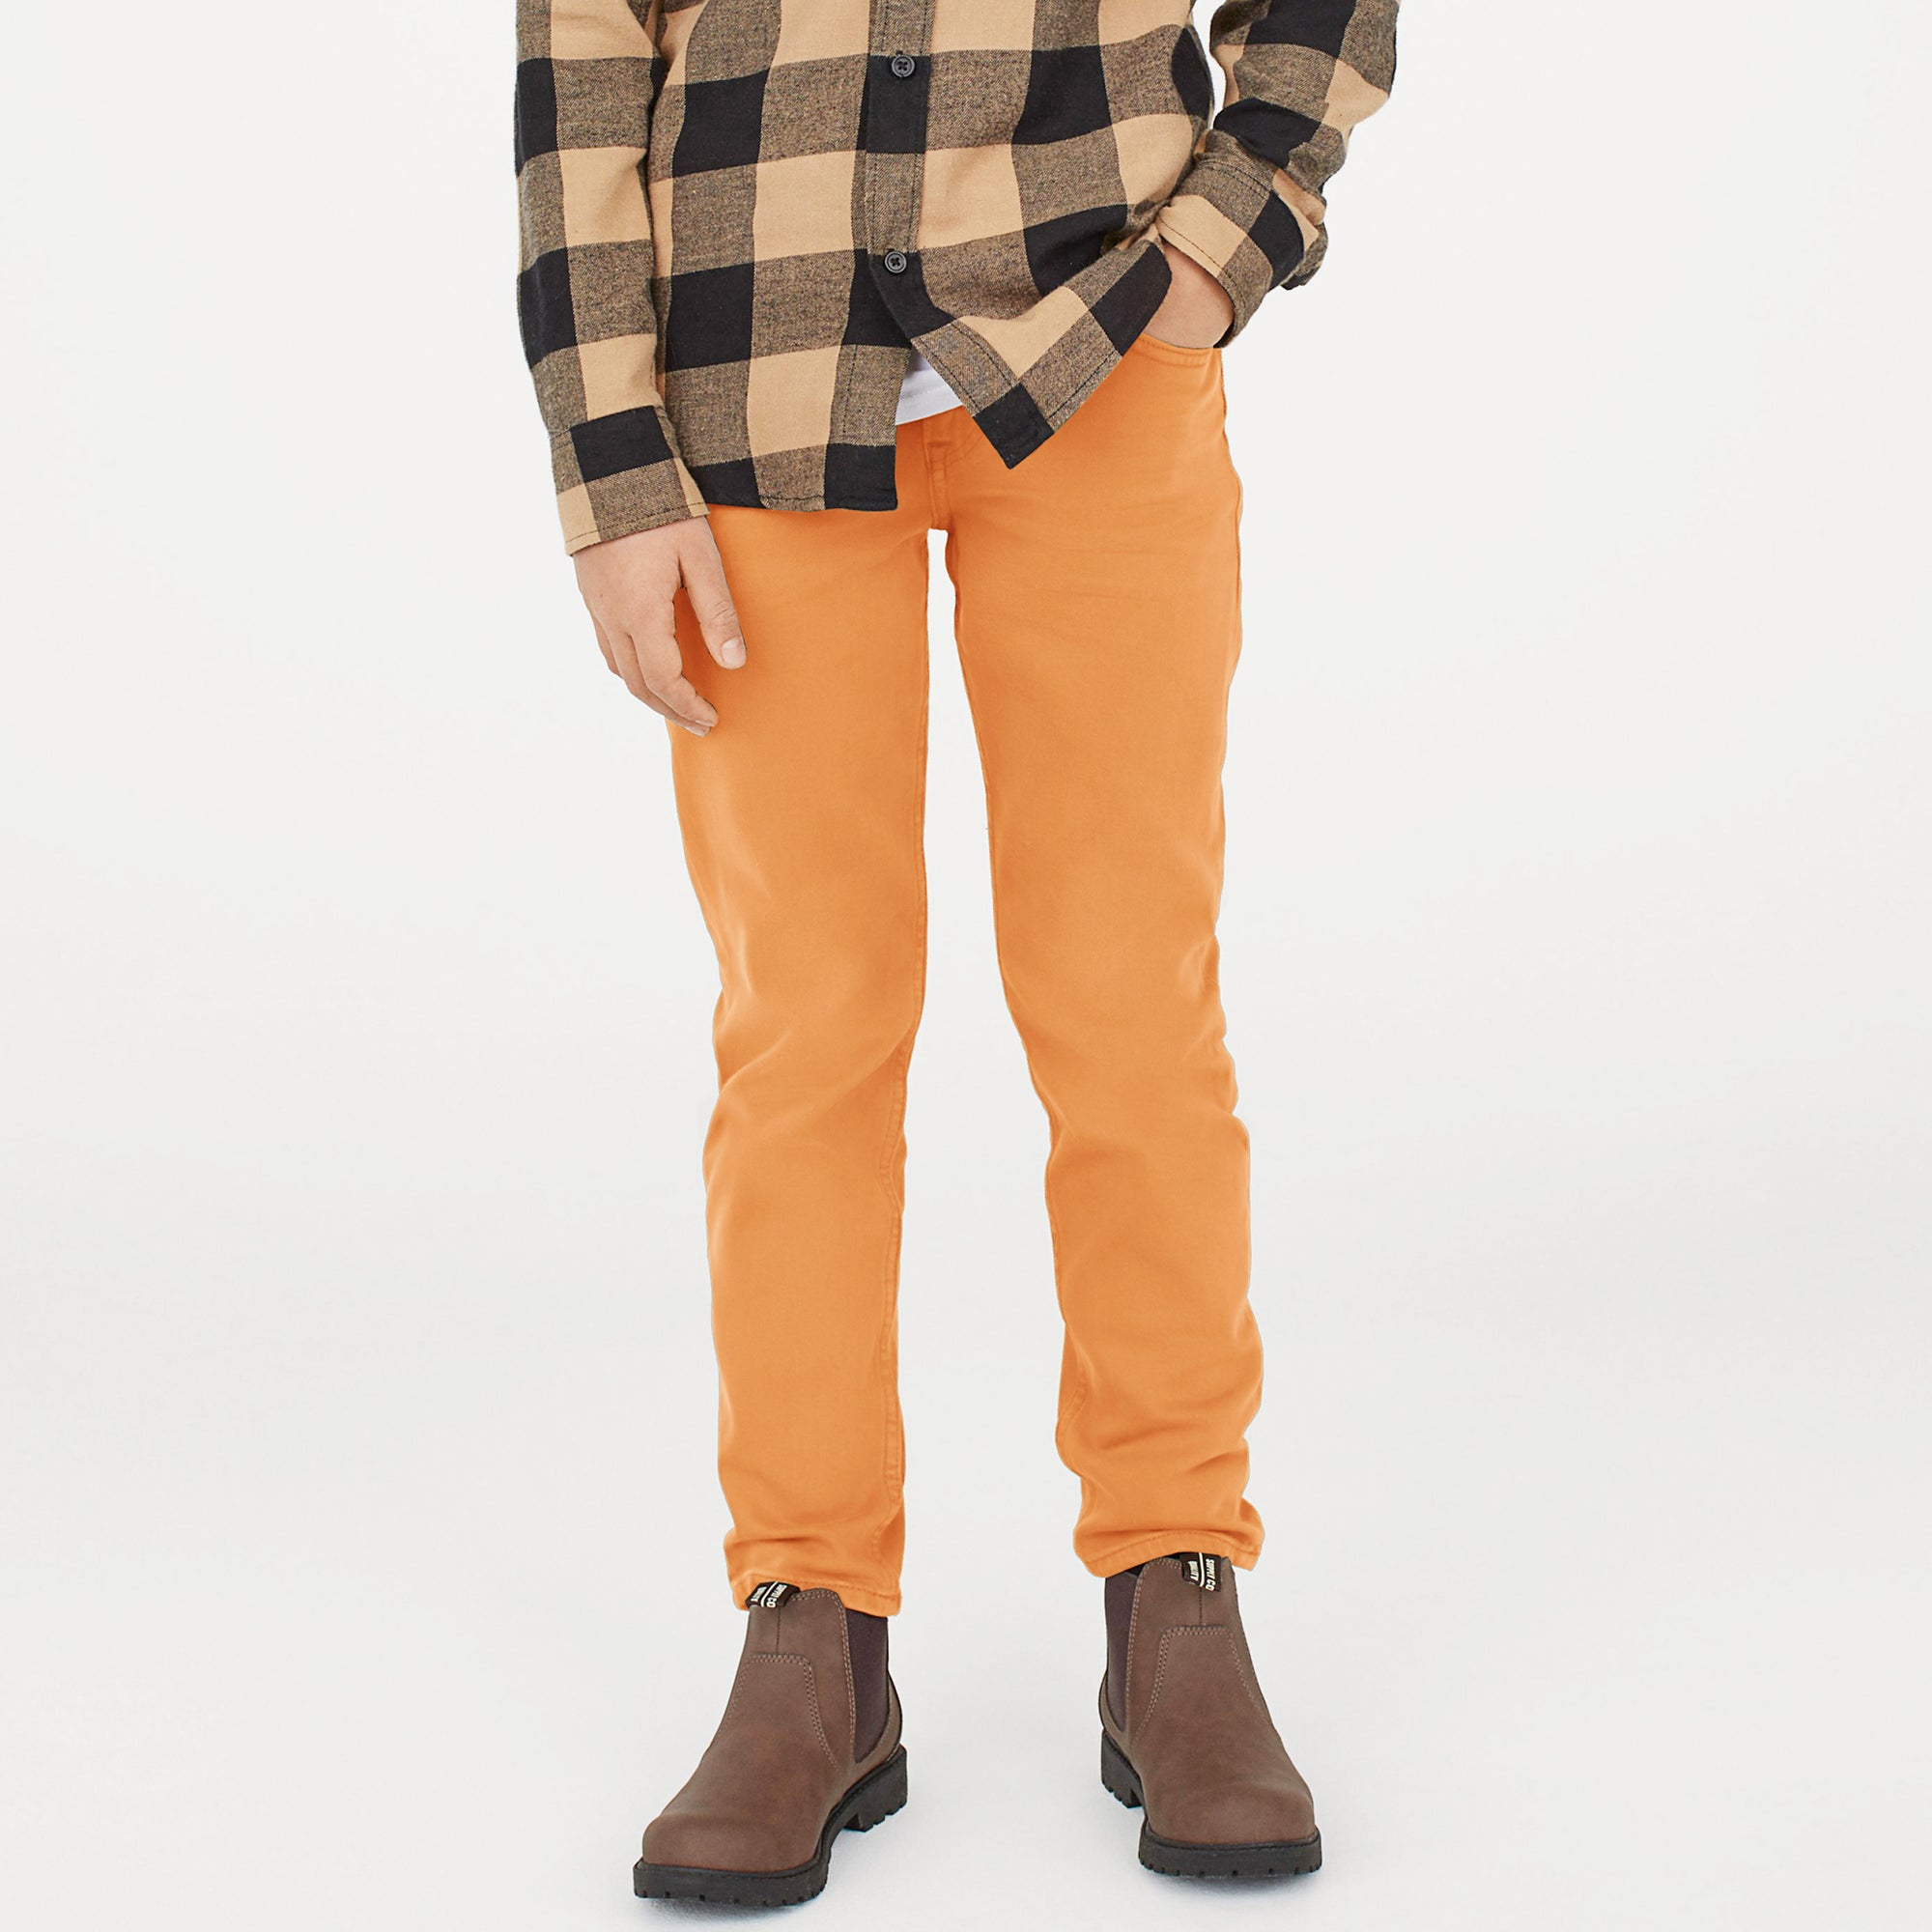 Mango Slim Fit Jeans Denim For Kids-Light Orange-NA11346